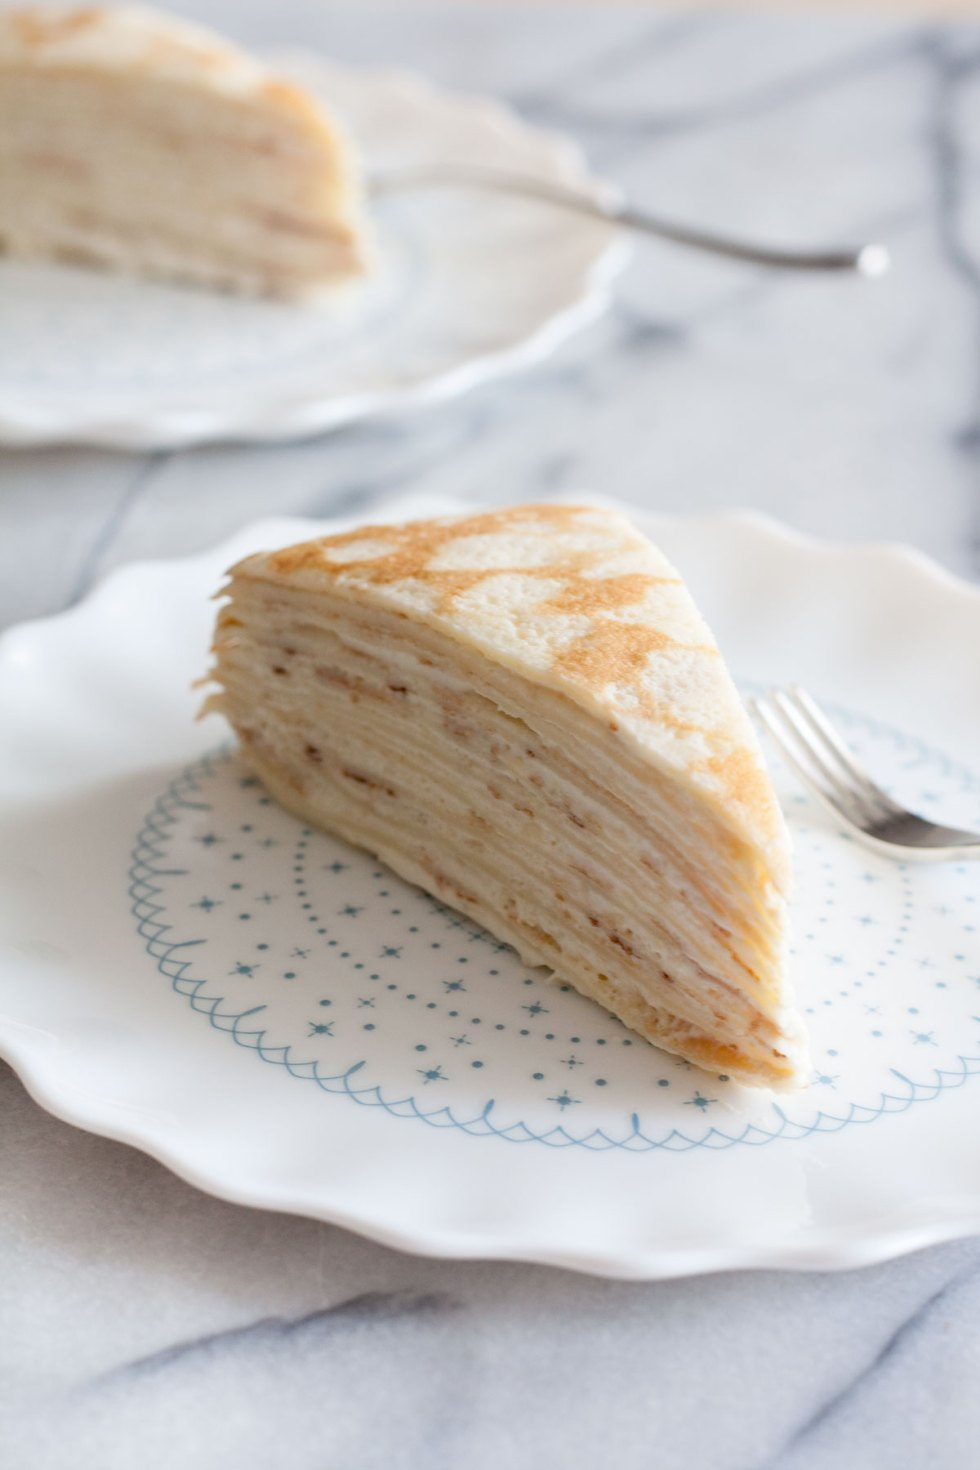 Decadent, classic French cake consisting of 14 layers of paper thin crepes separated with pastry cream, plus variations on how you can serve it in different ways just by adding 1 or 2 ingredients!